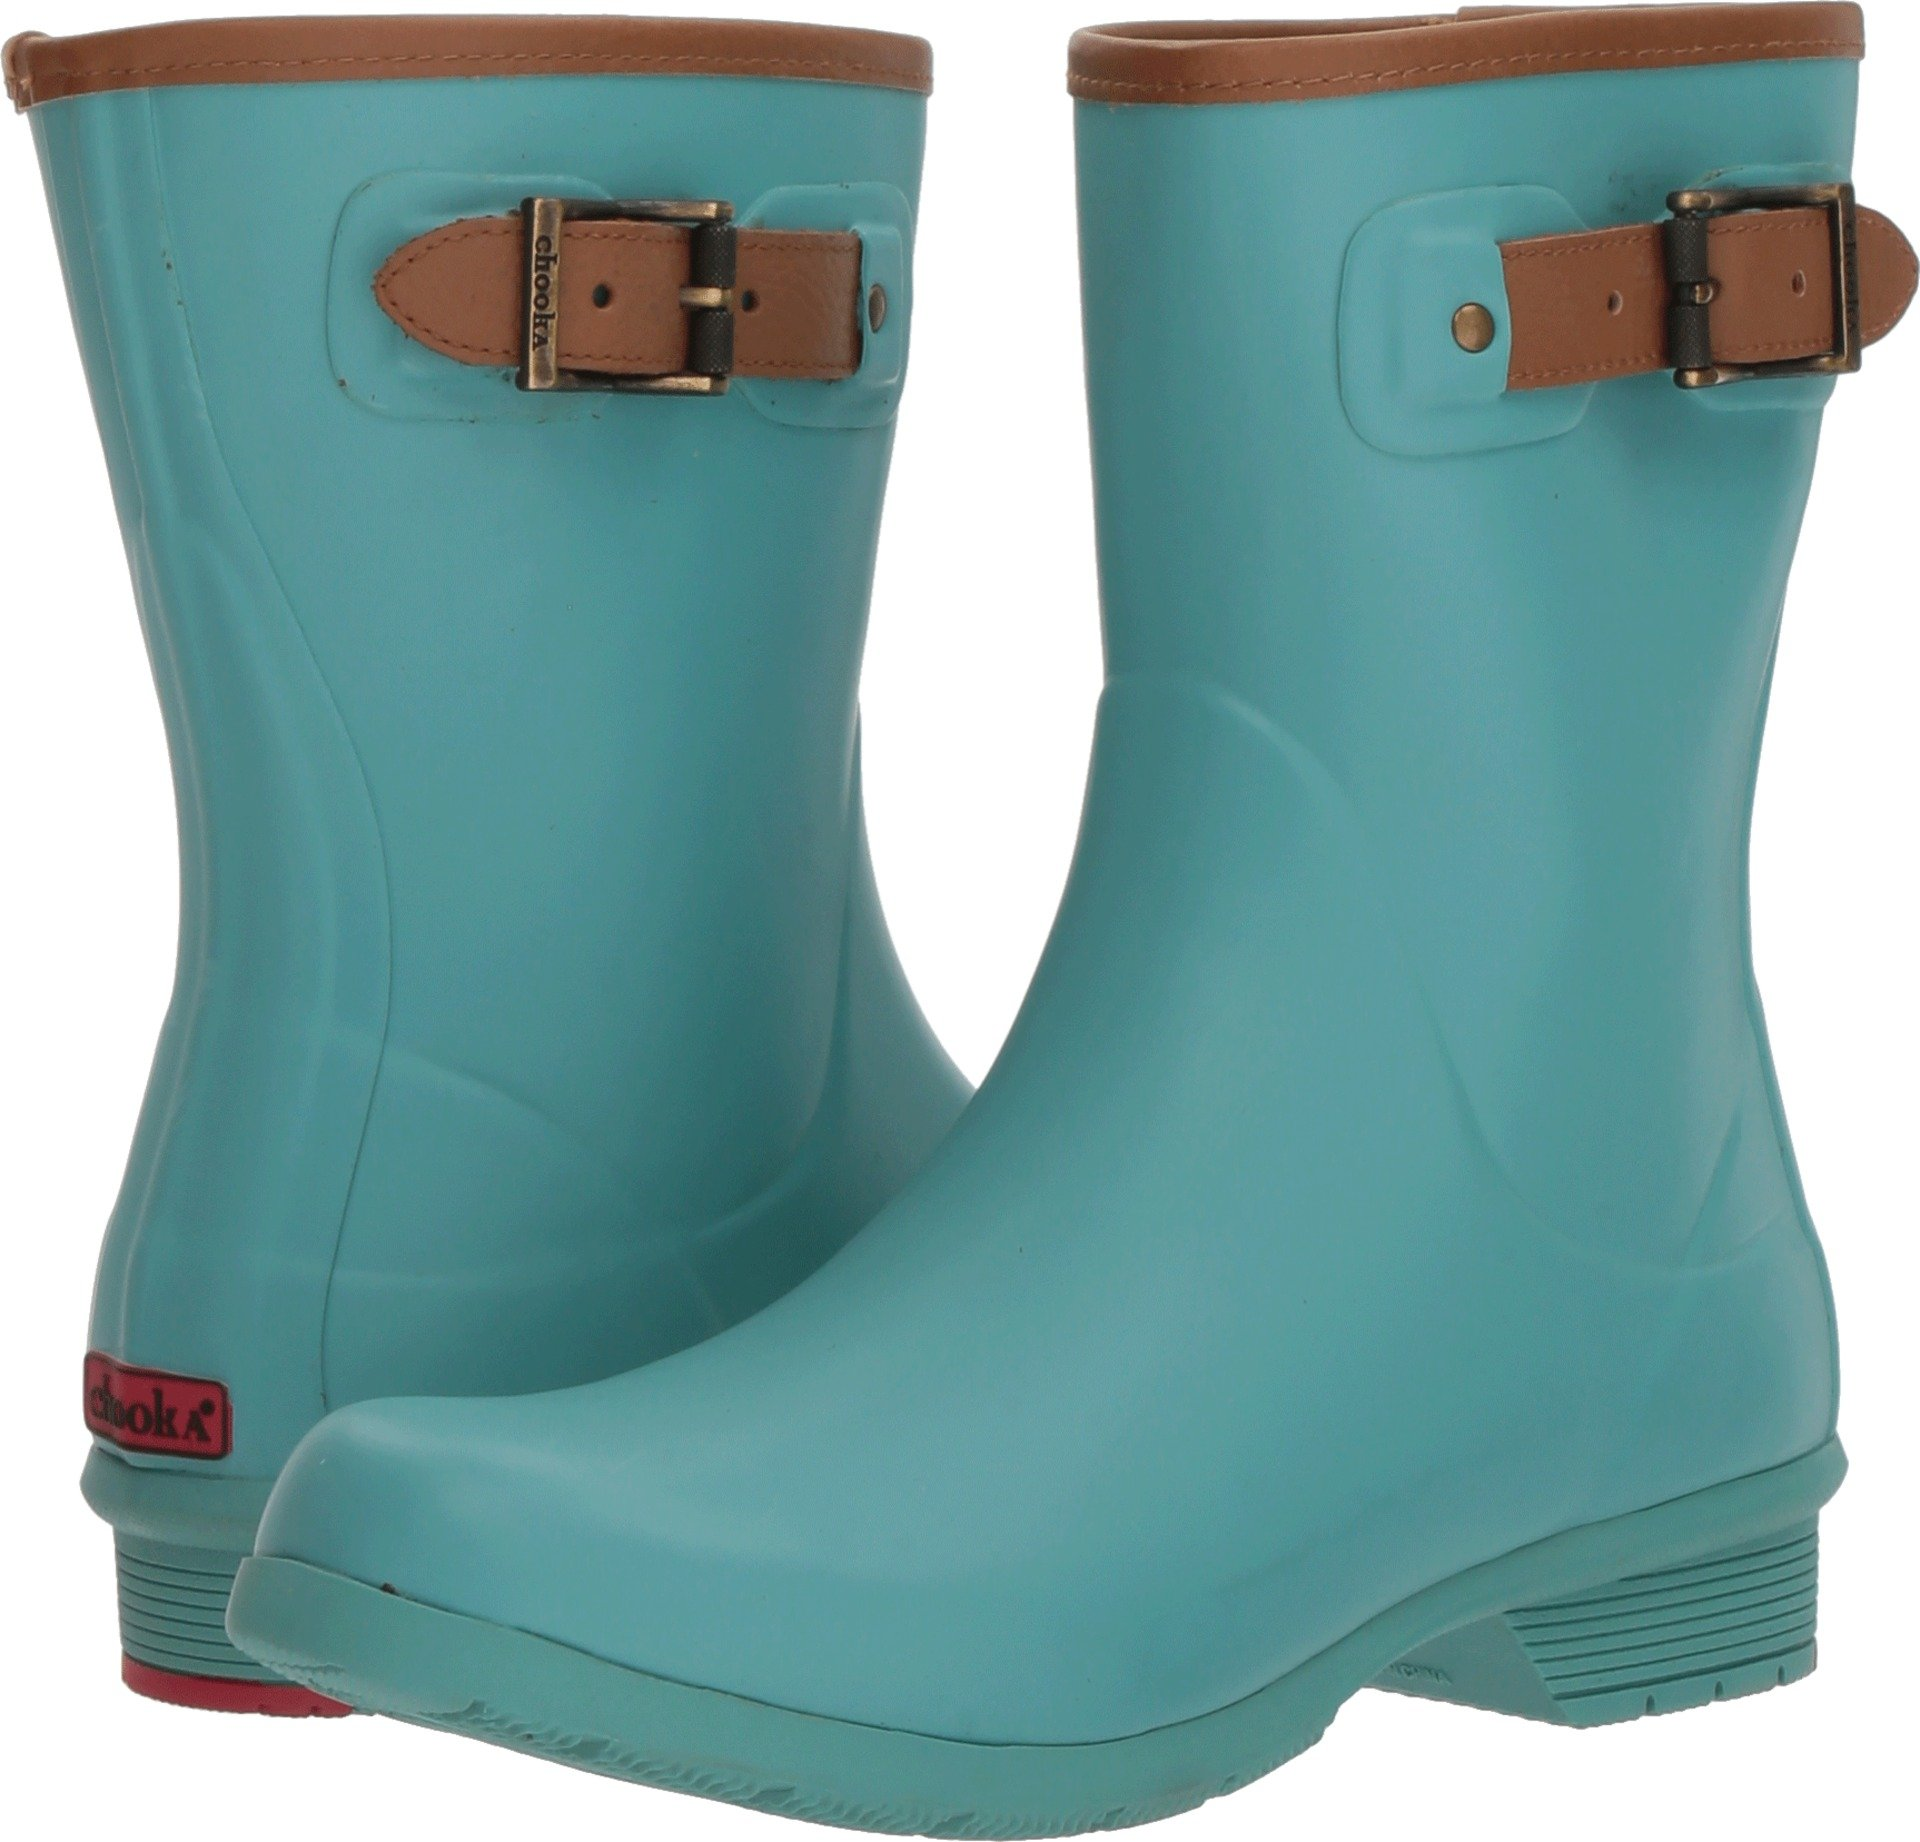 Chooka Women's City Solid Mid Rain Boots Aqua 9 M US